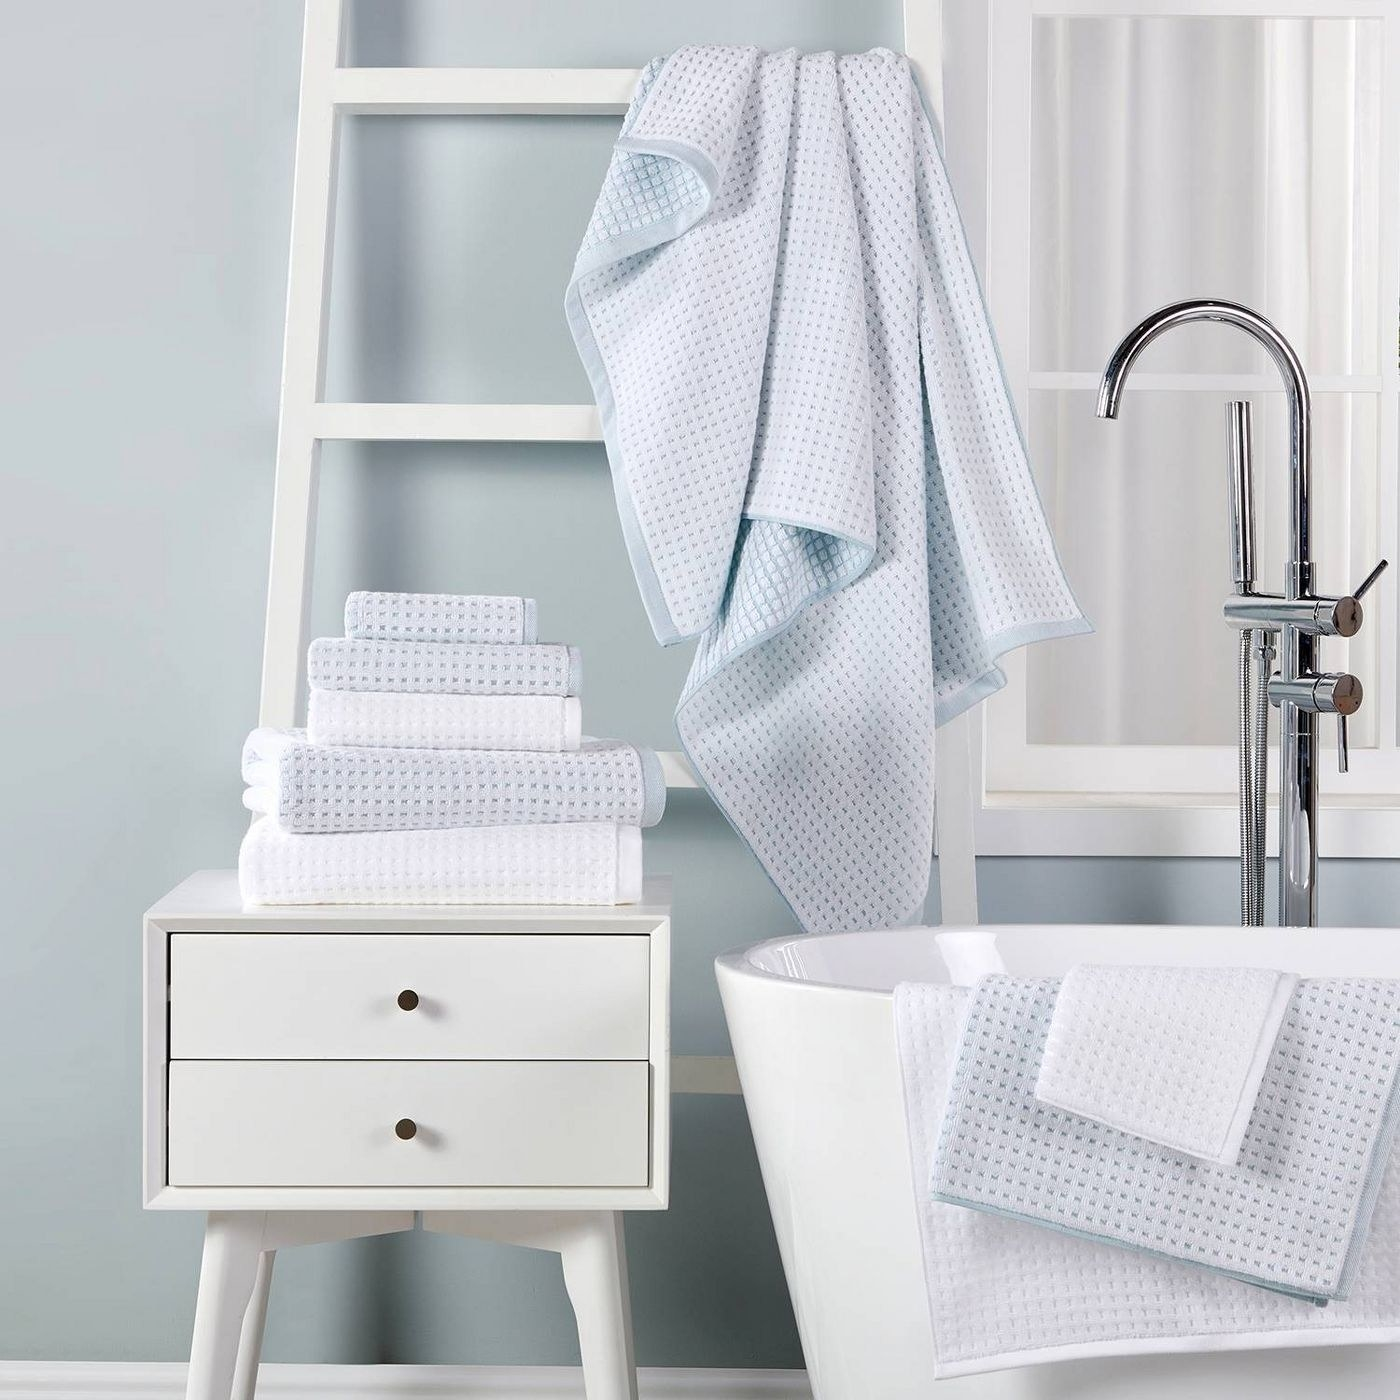 blue and white towels in a bathroom